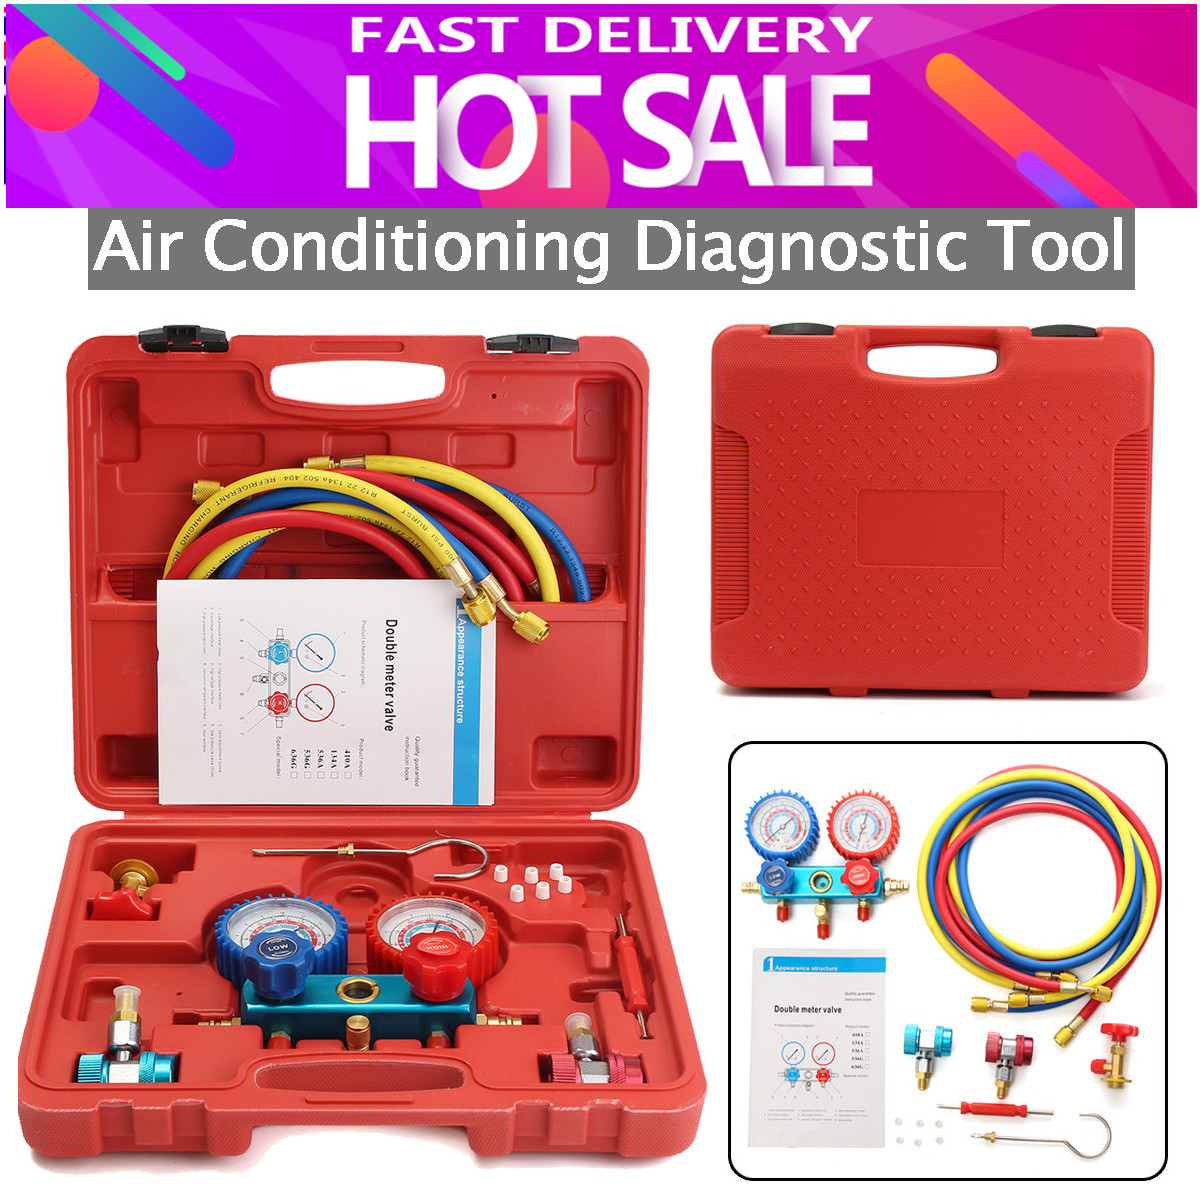 лучшая цена R134A HVAC A/C Refrigeration Kit AC Manifold Gauge Set Auto Service Kit Car Air Conditioning Repair Fluorine Filling Tool